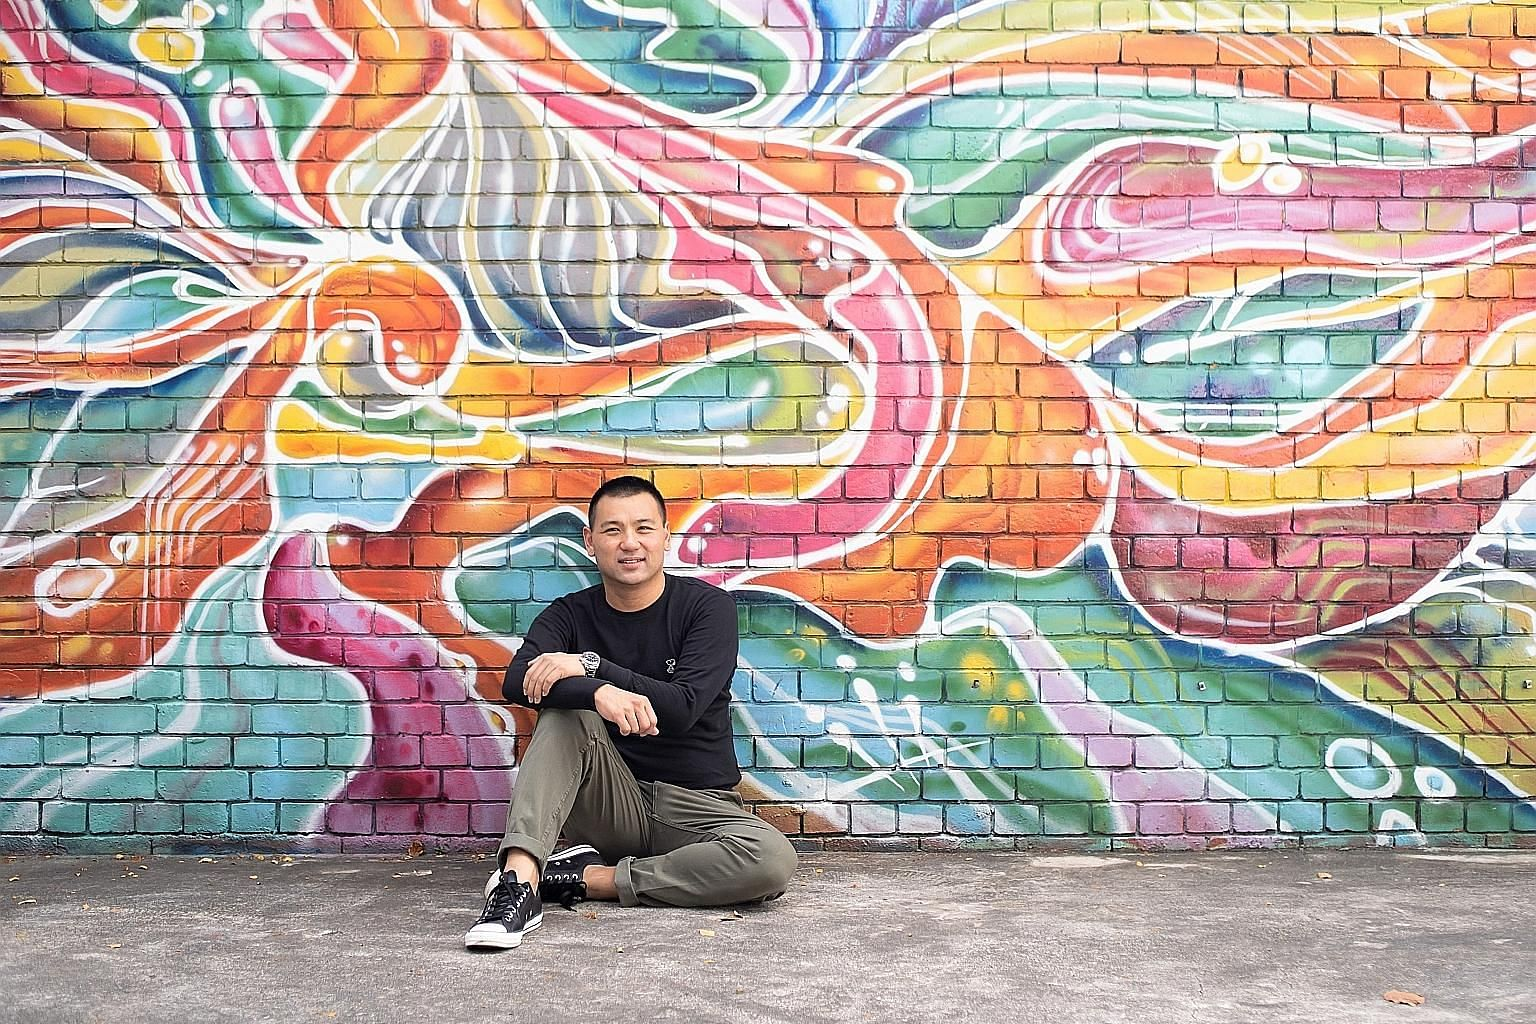 Mr Bryan Tan owns about two dozen pieces of art, which he sees as an extension of his lifelong love of art.